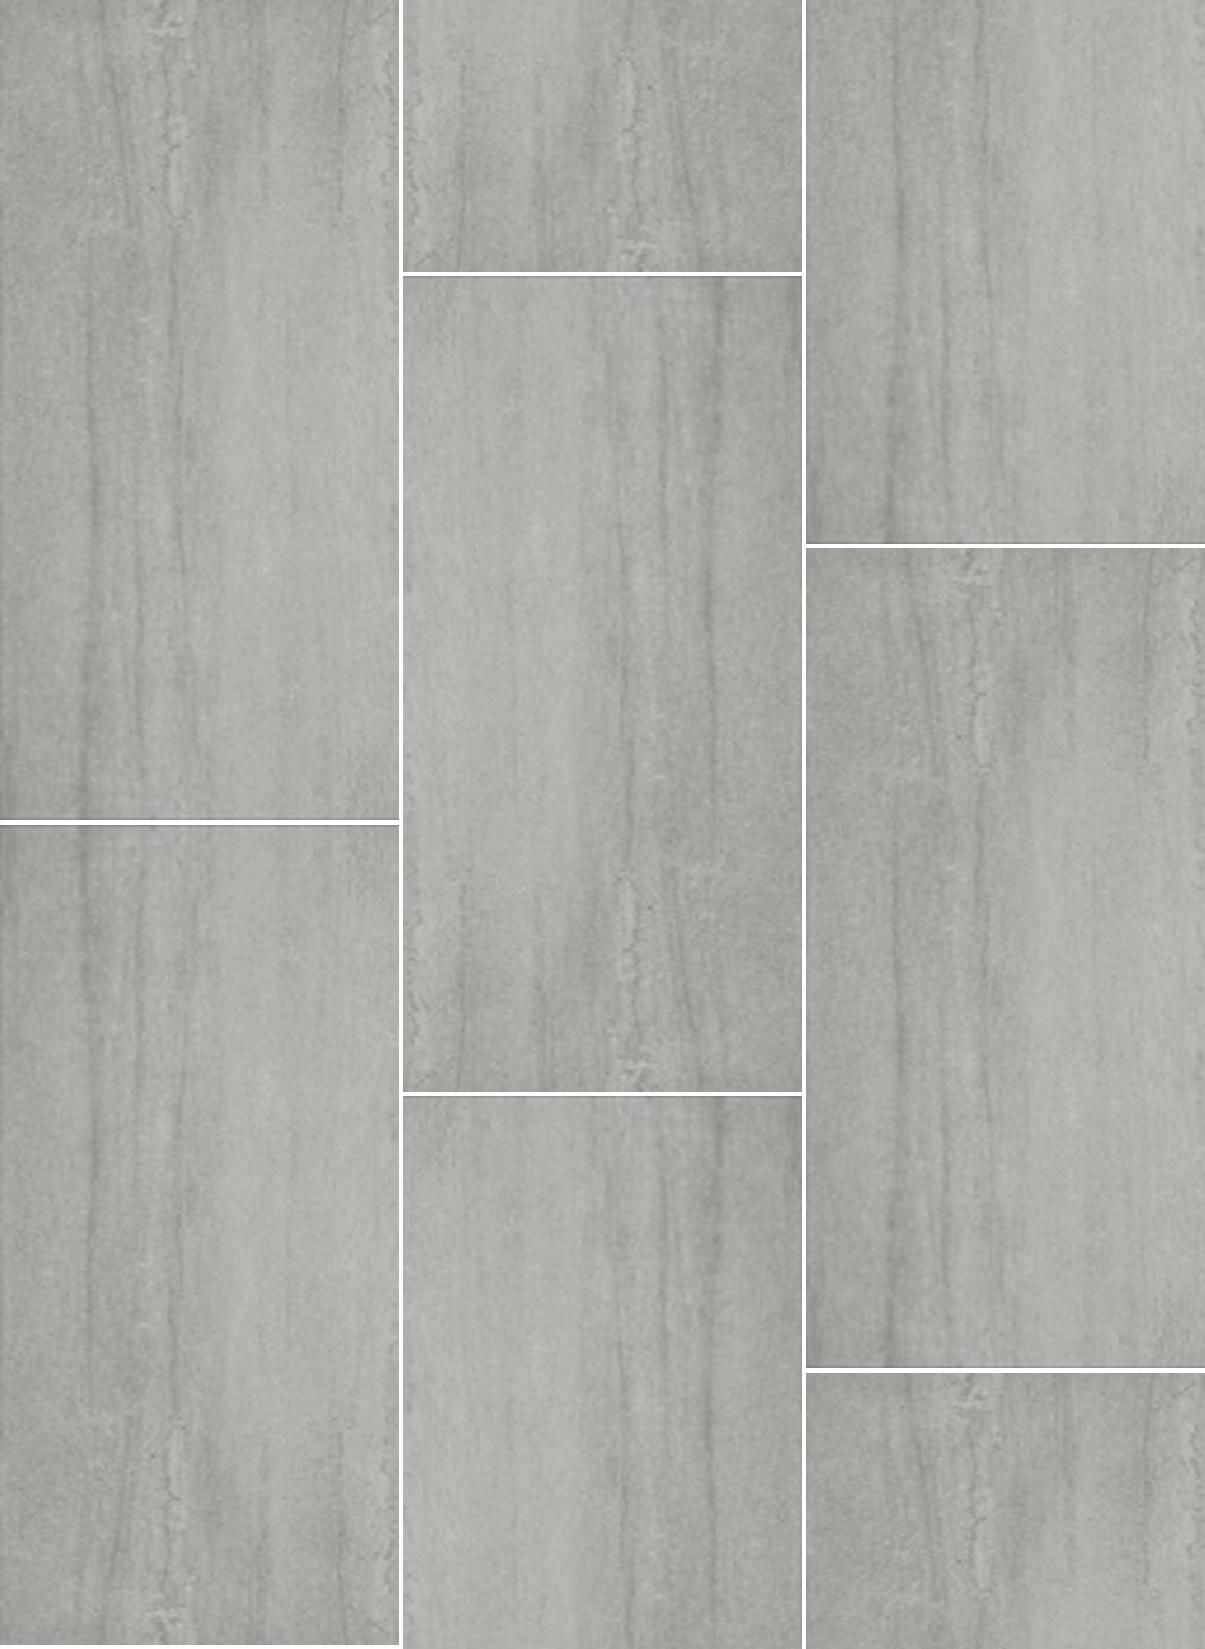 Lglimitlessdesign contest grey 12 24 floor tile nick for Floor and tile